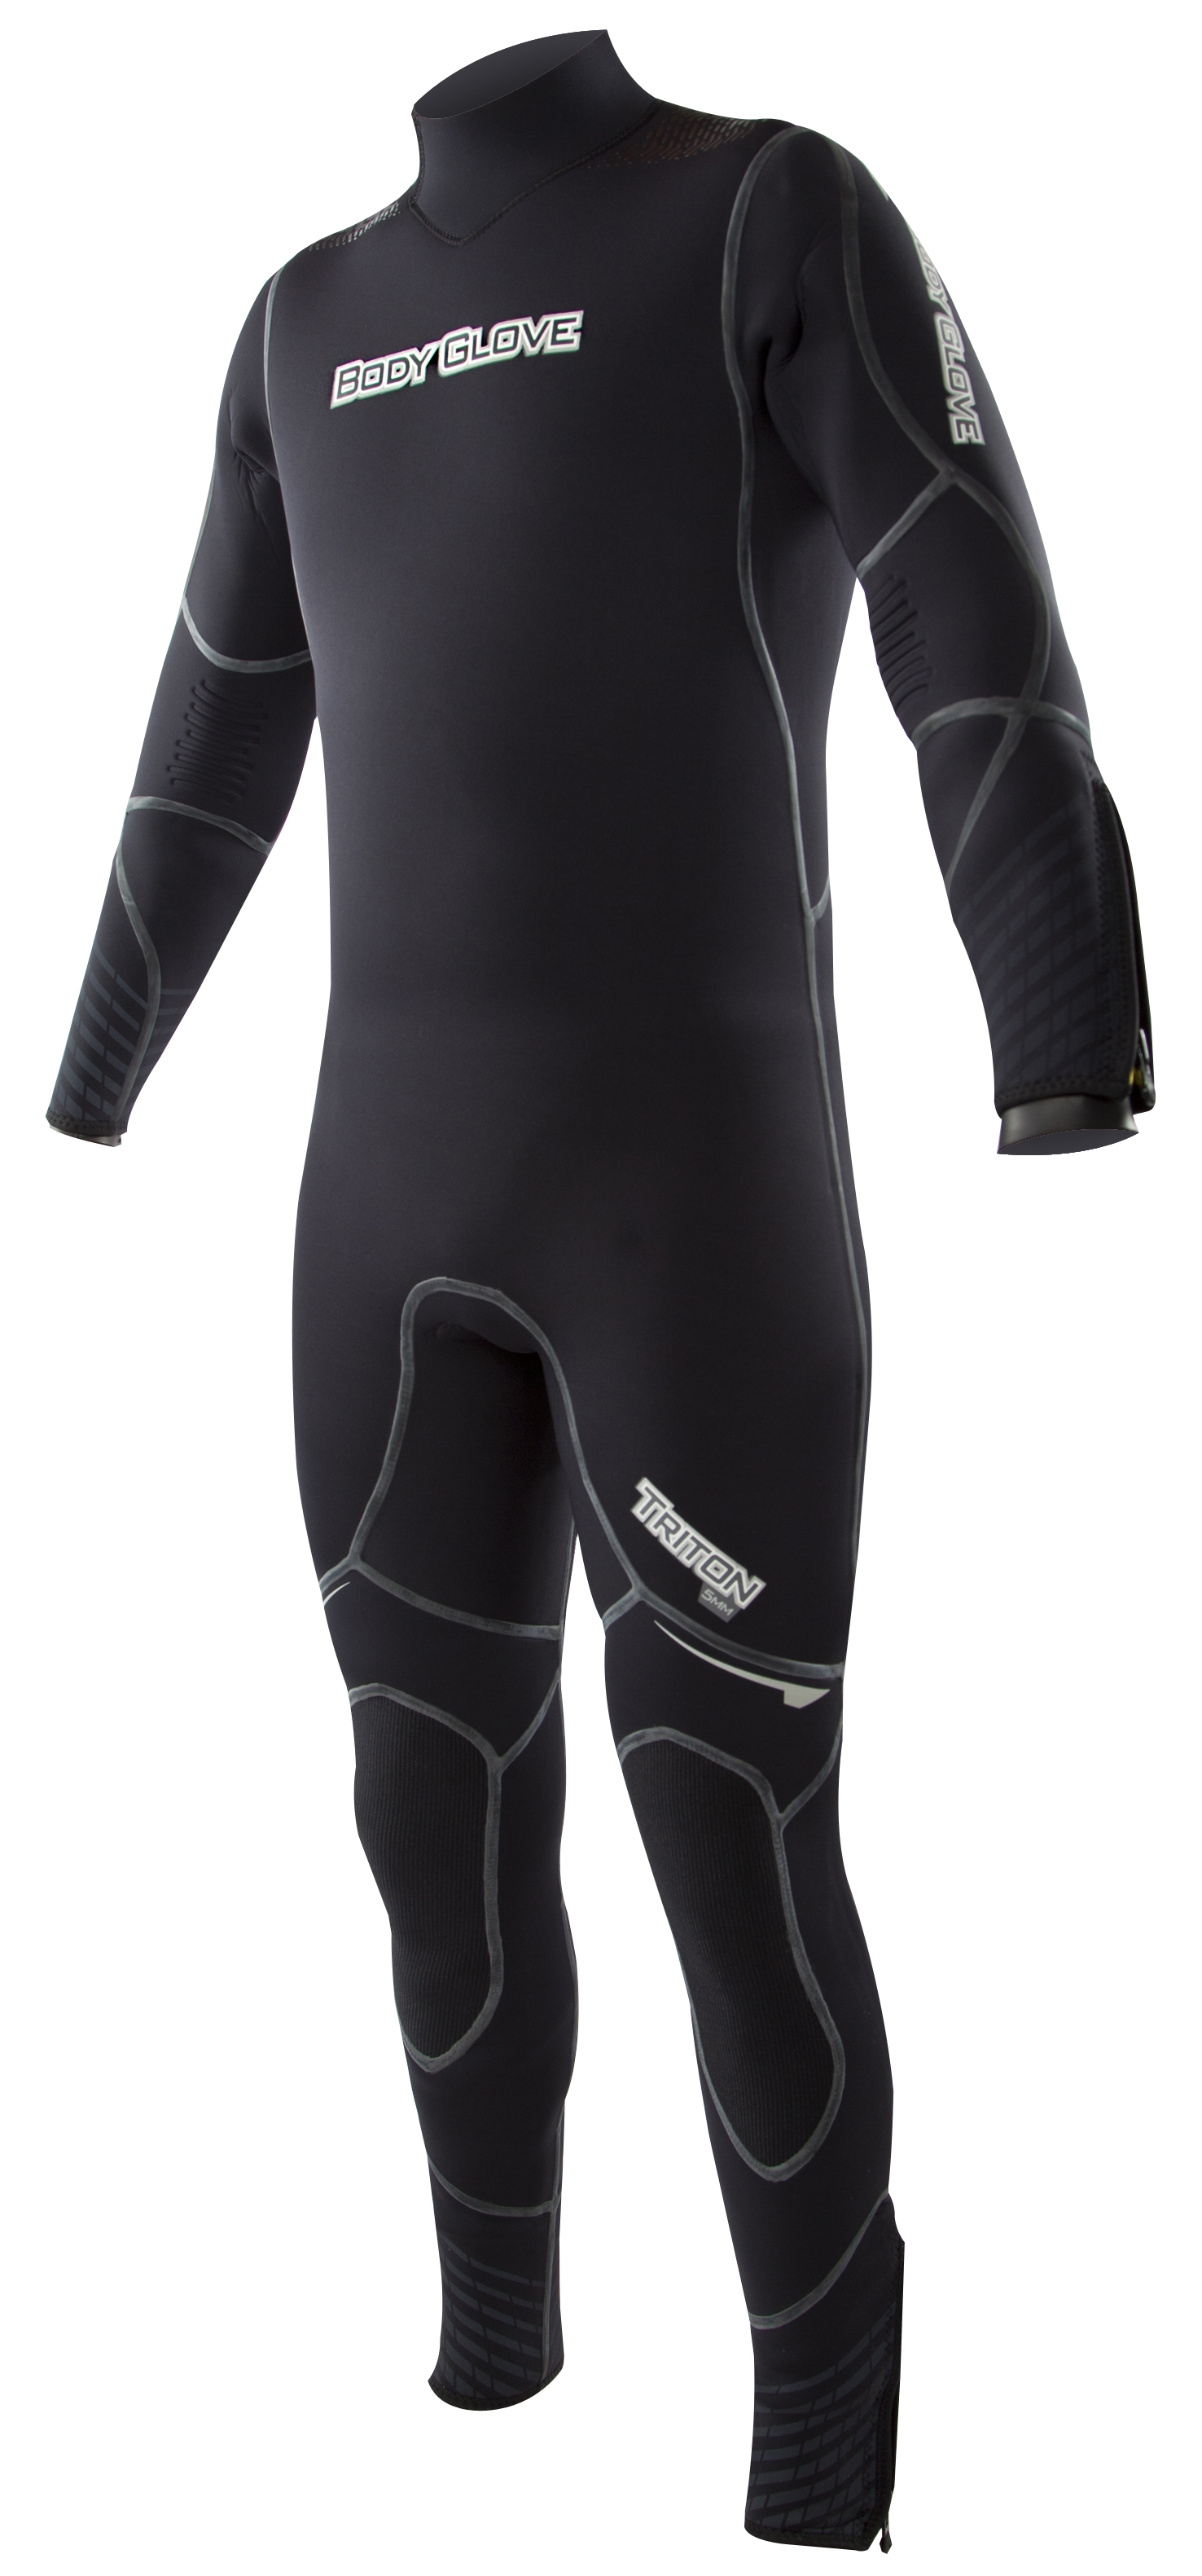 Body Glove Triton 5mm Men's Backzip Fullsuit - Black